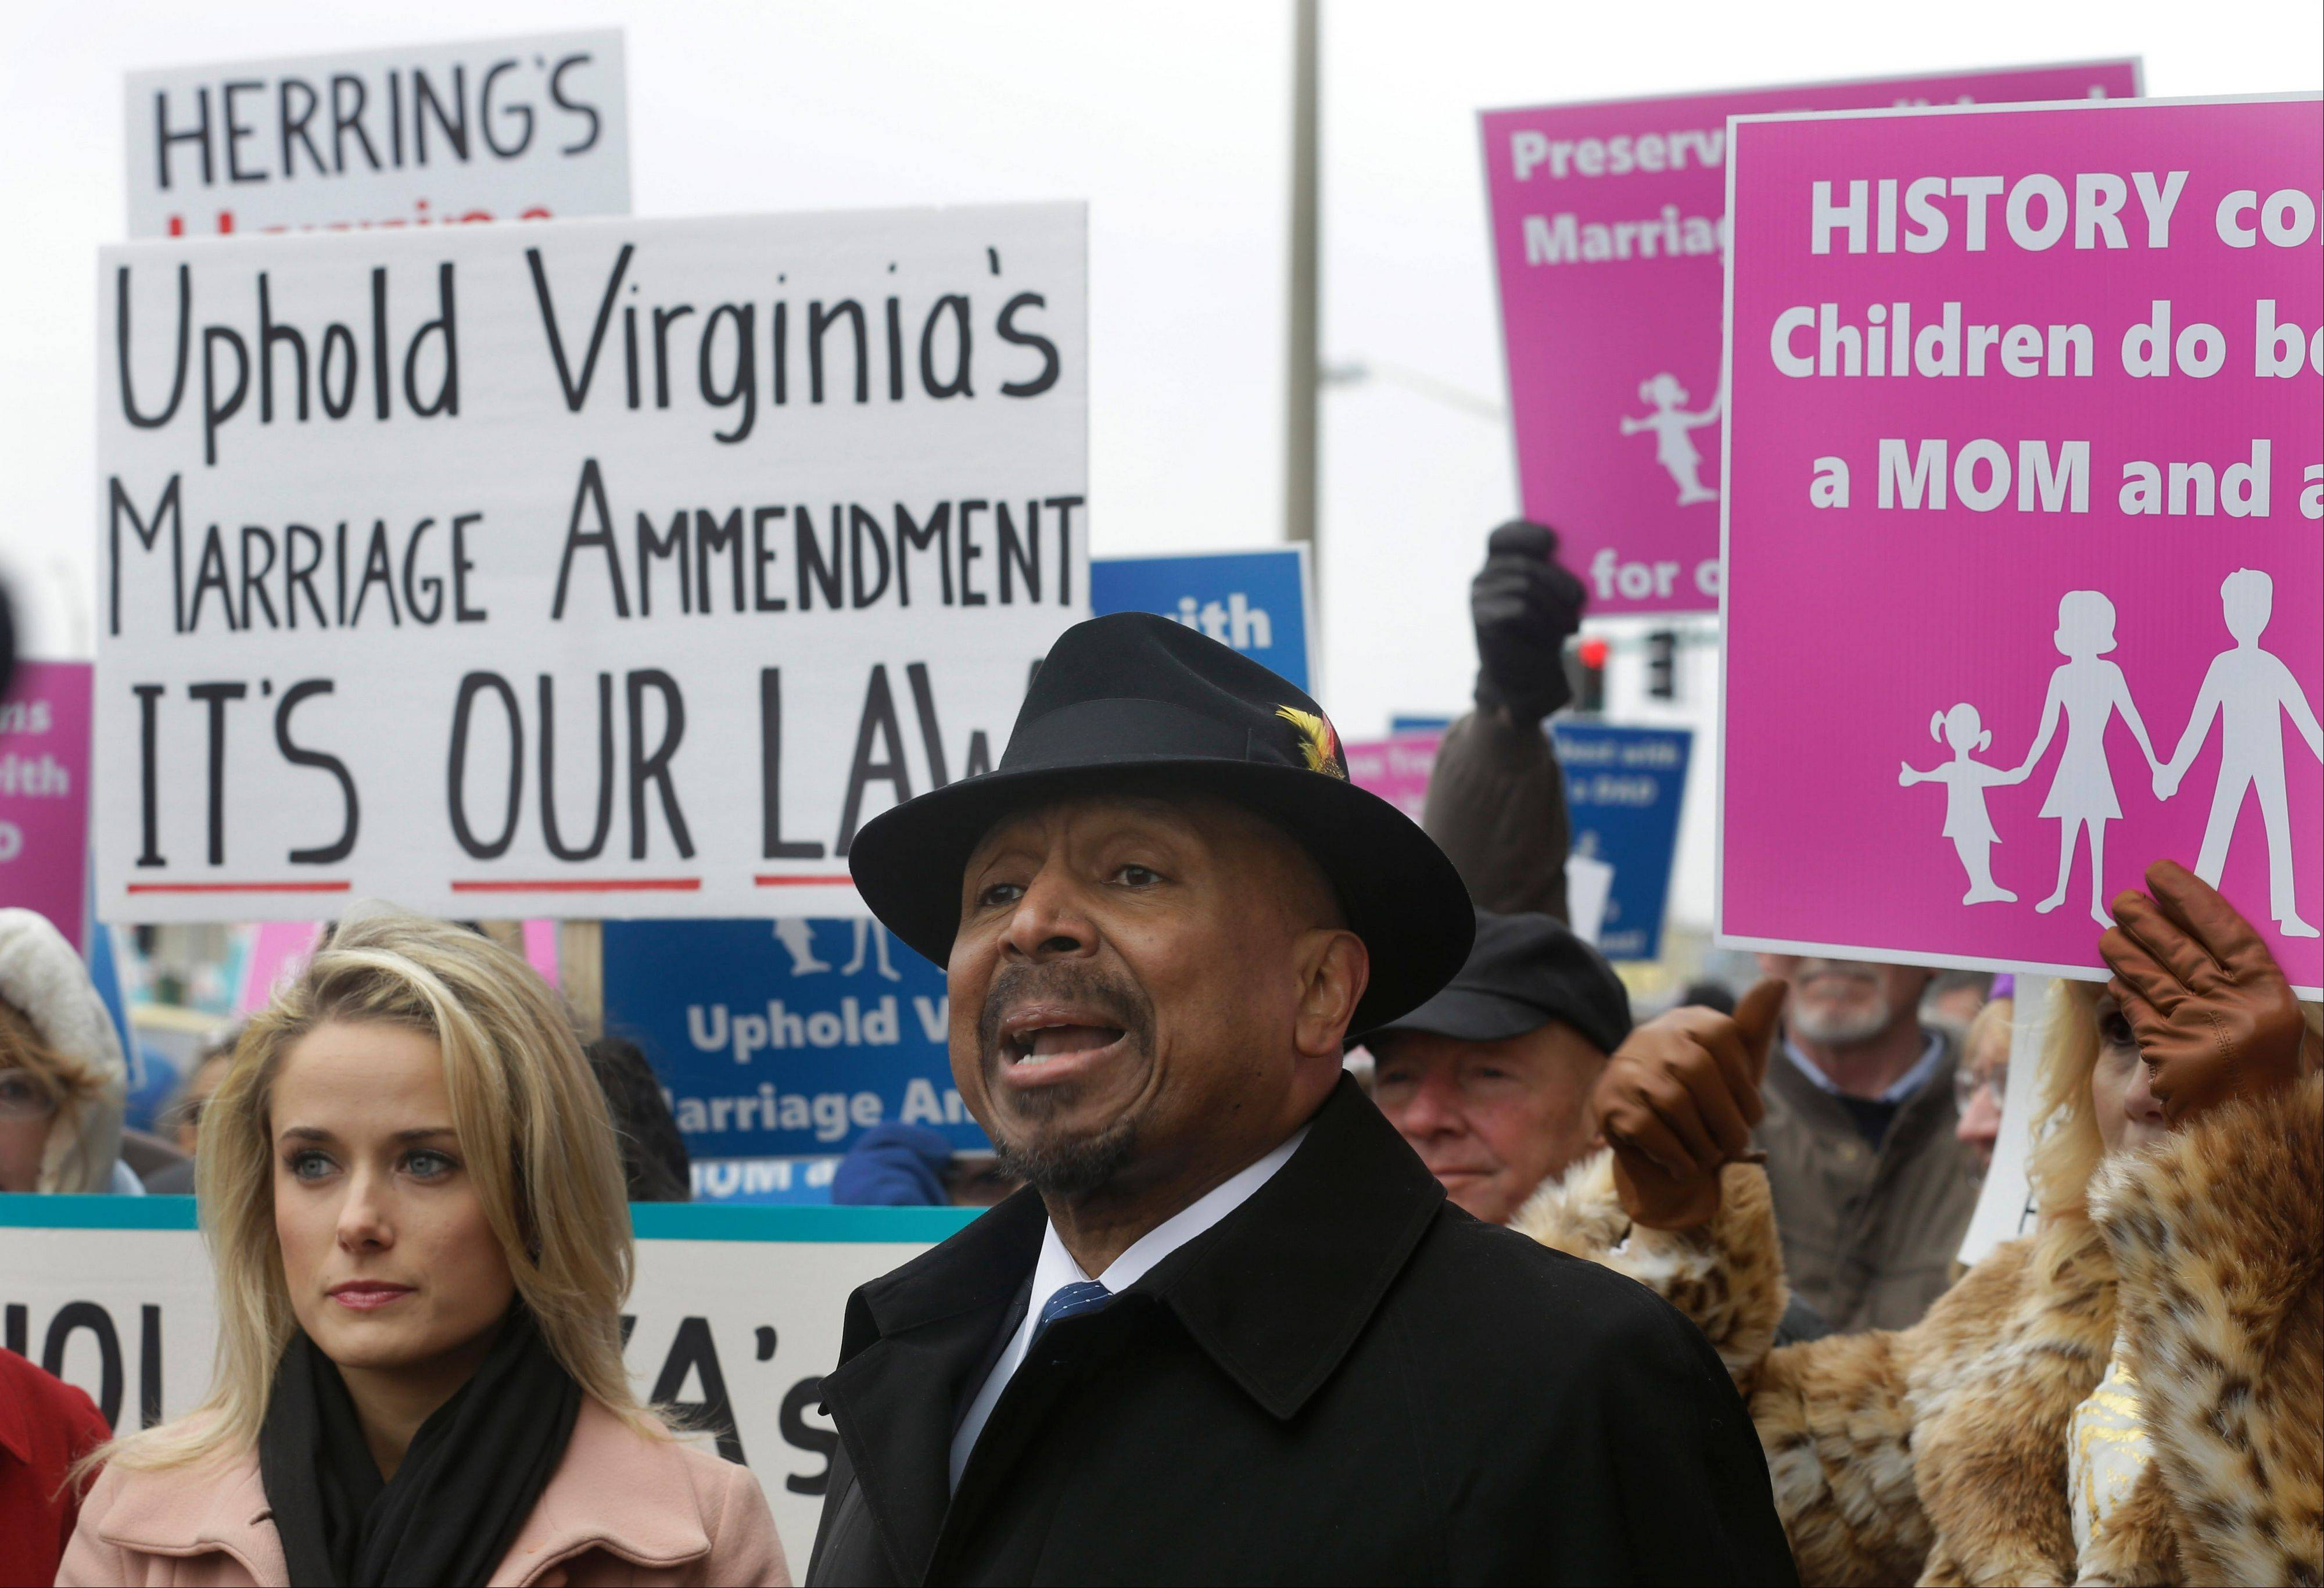 Former Republican lieutenant governor candidate E.W. Jackson, front center, speaks in favor of the law banning same-sex marriage. A federal judge will hear arguments Tuesday on whether Virginia's ban on gay marriage is unconstitutional.